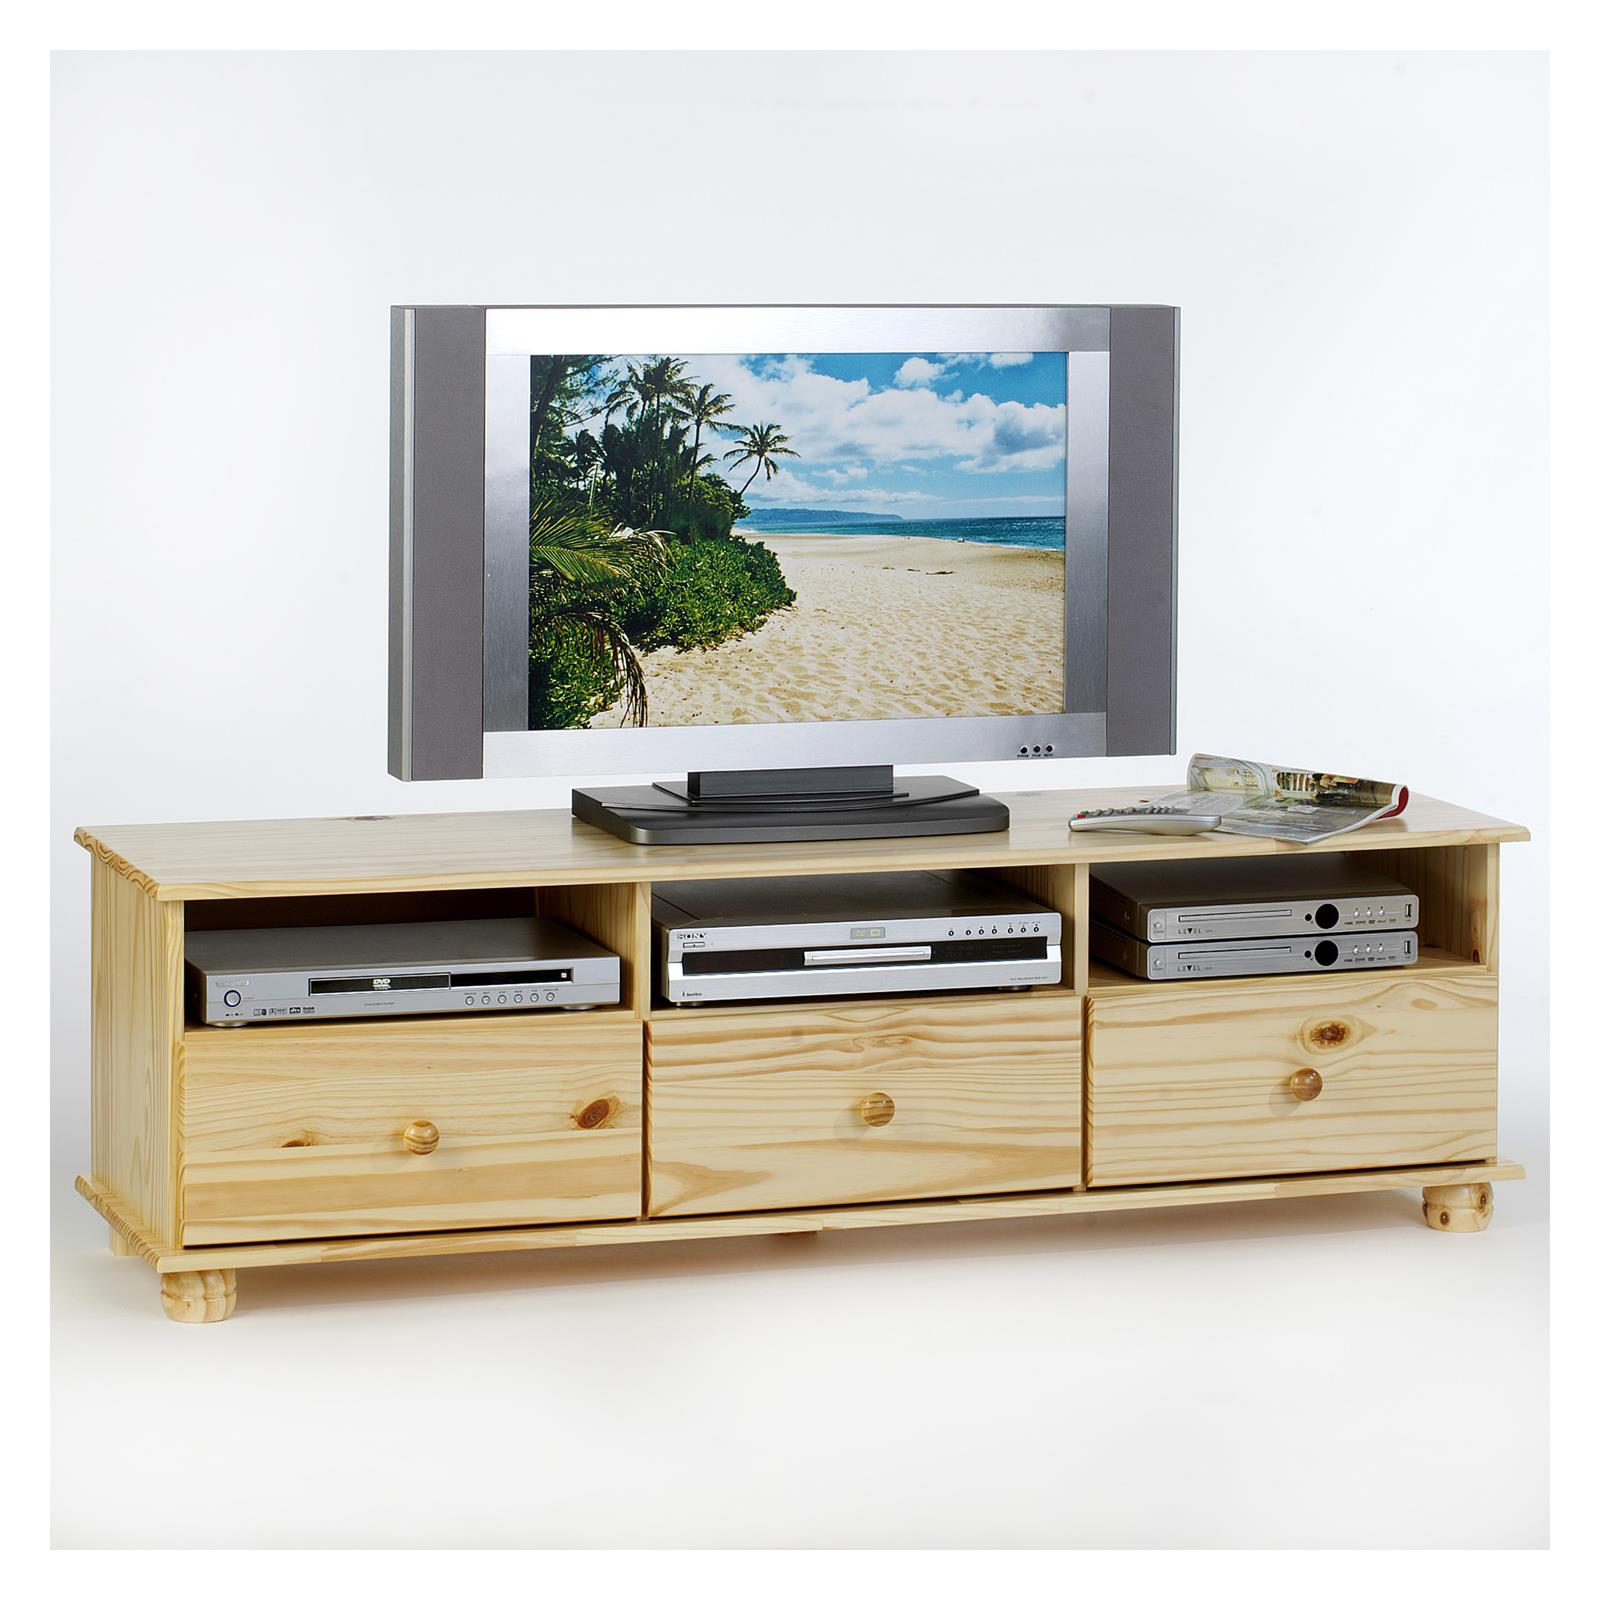 meuble tv en pin bern 3 tiroirs 3 niches vernis naturel mobil meubles. Black Bedroom Furniture Sets. Home Design Ideas